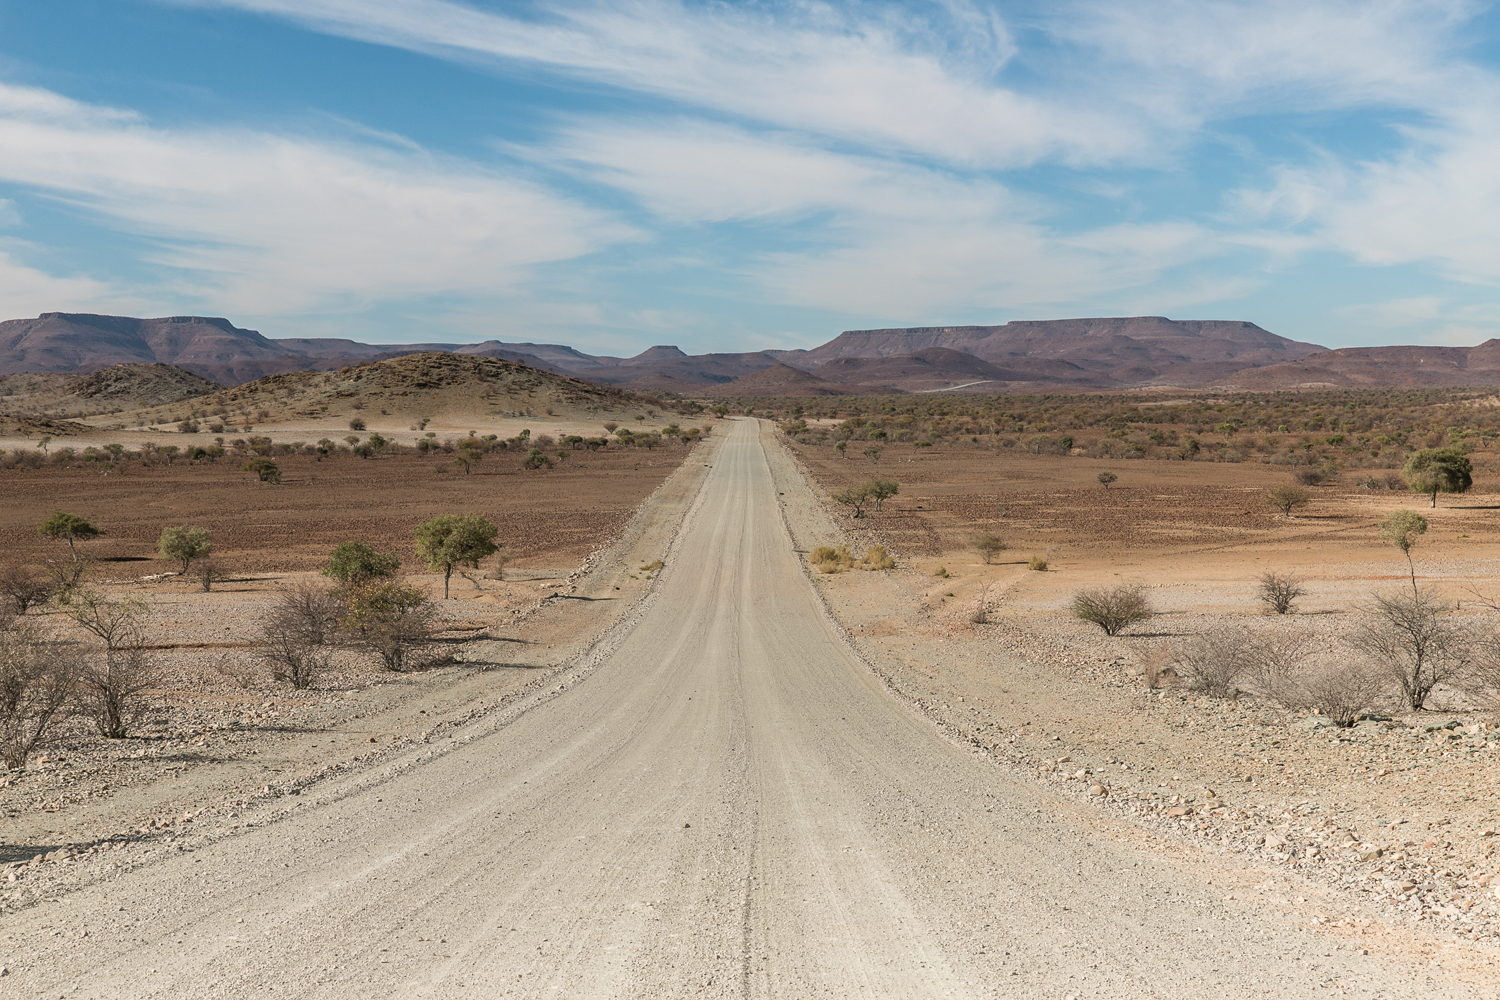 Endless road and sky in Damaraland